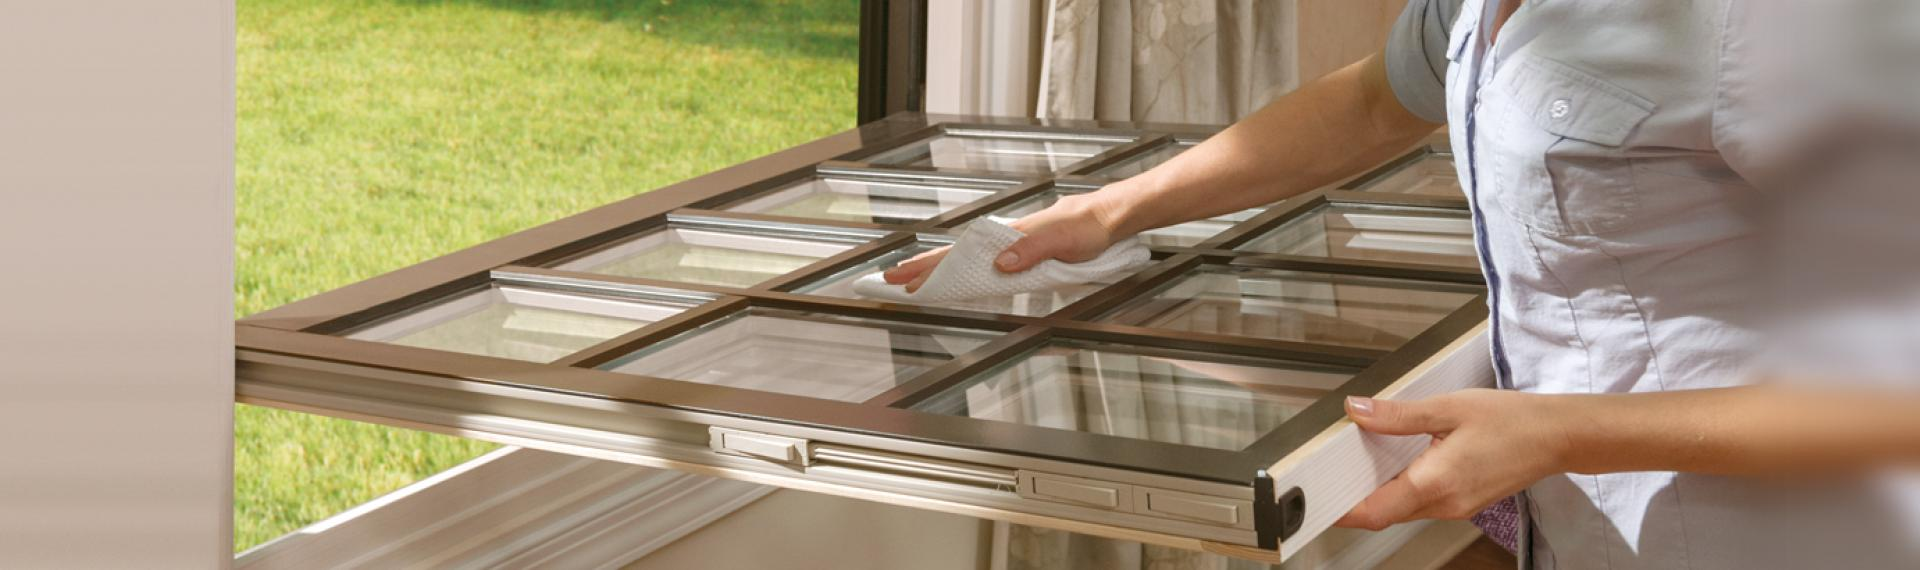 Care and Maintenance for your Milgard Windows & Doors